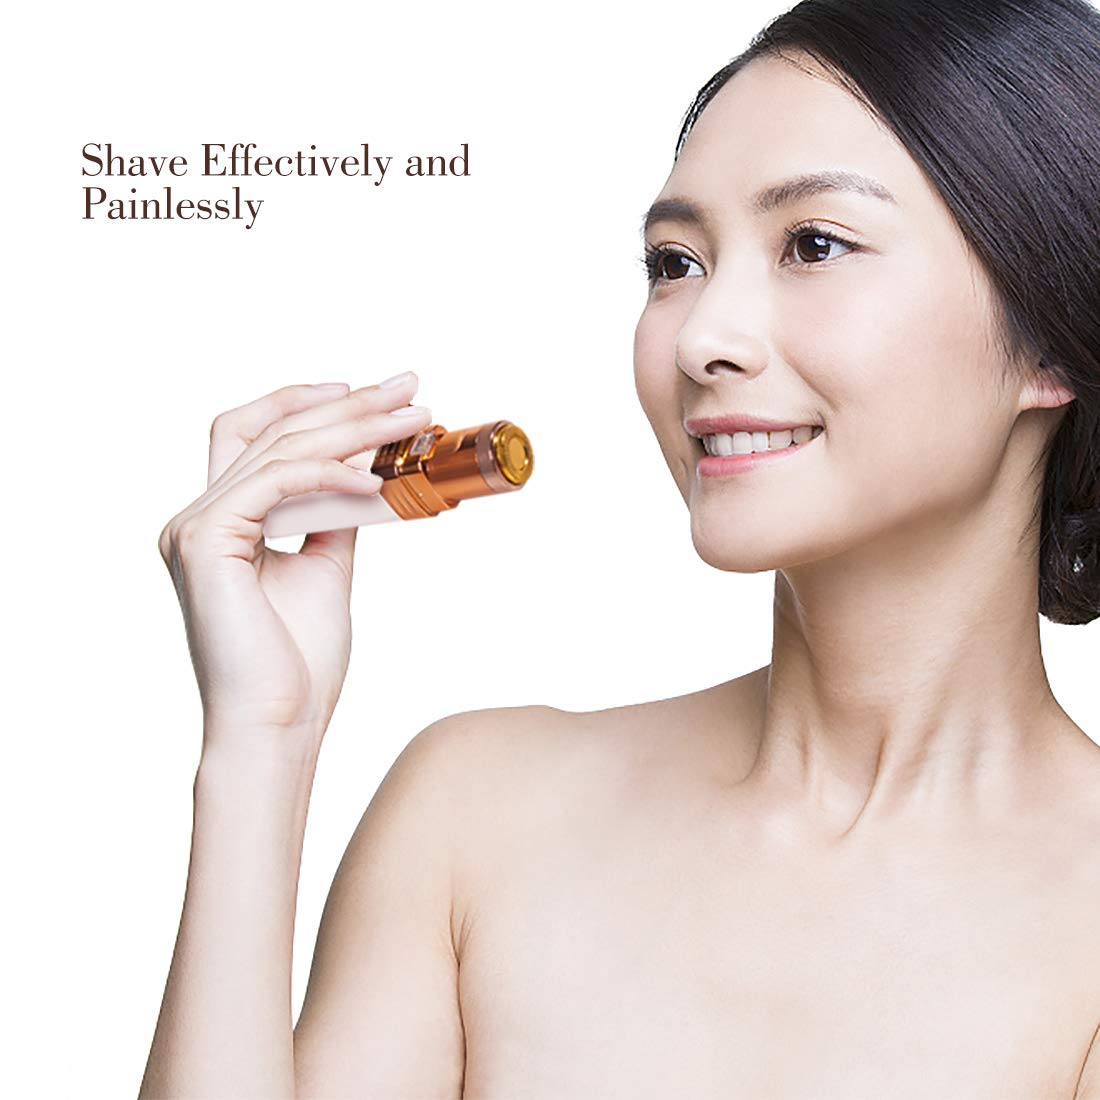 SHINCO Facial Hair Removal For Women,Painless Hair Remover with Built-in-LED Light for Face Lips Chin Cheeks Neck,Compact Hair Trimmer for Peach Fuzz with Cleaning Brush(Battery Not Included )